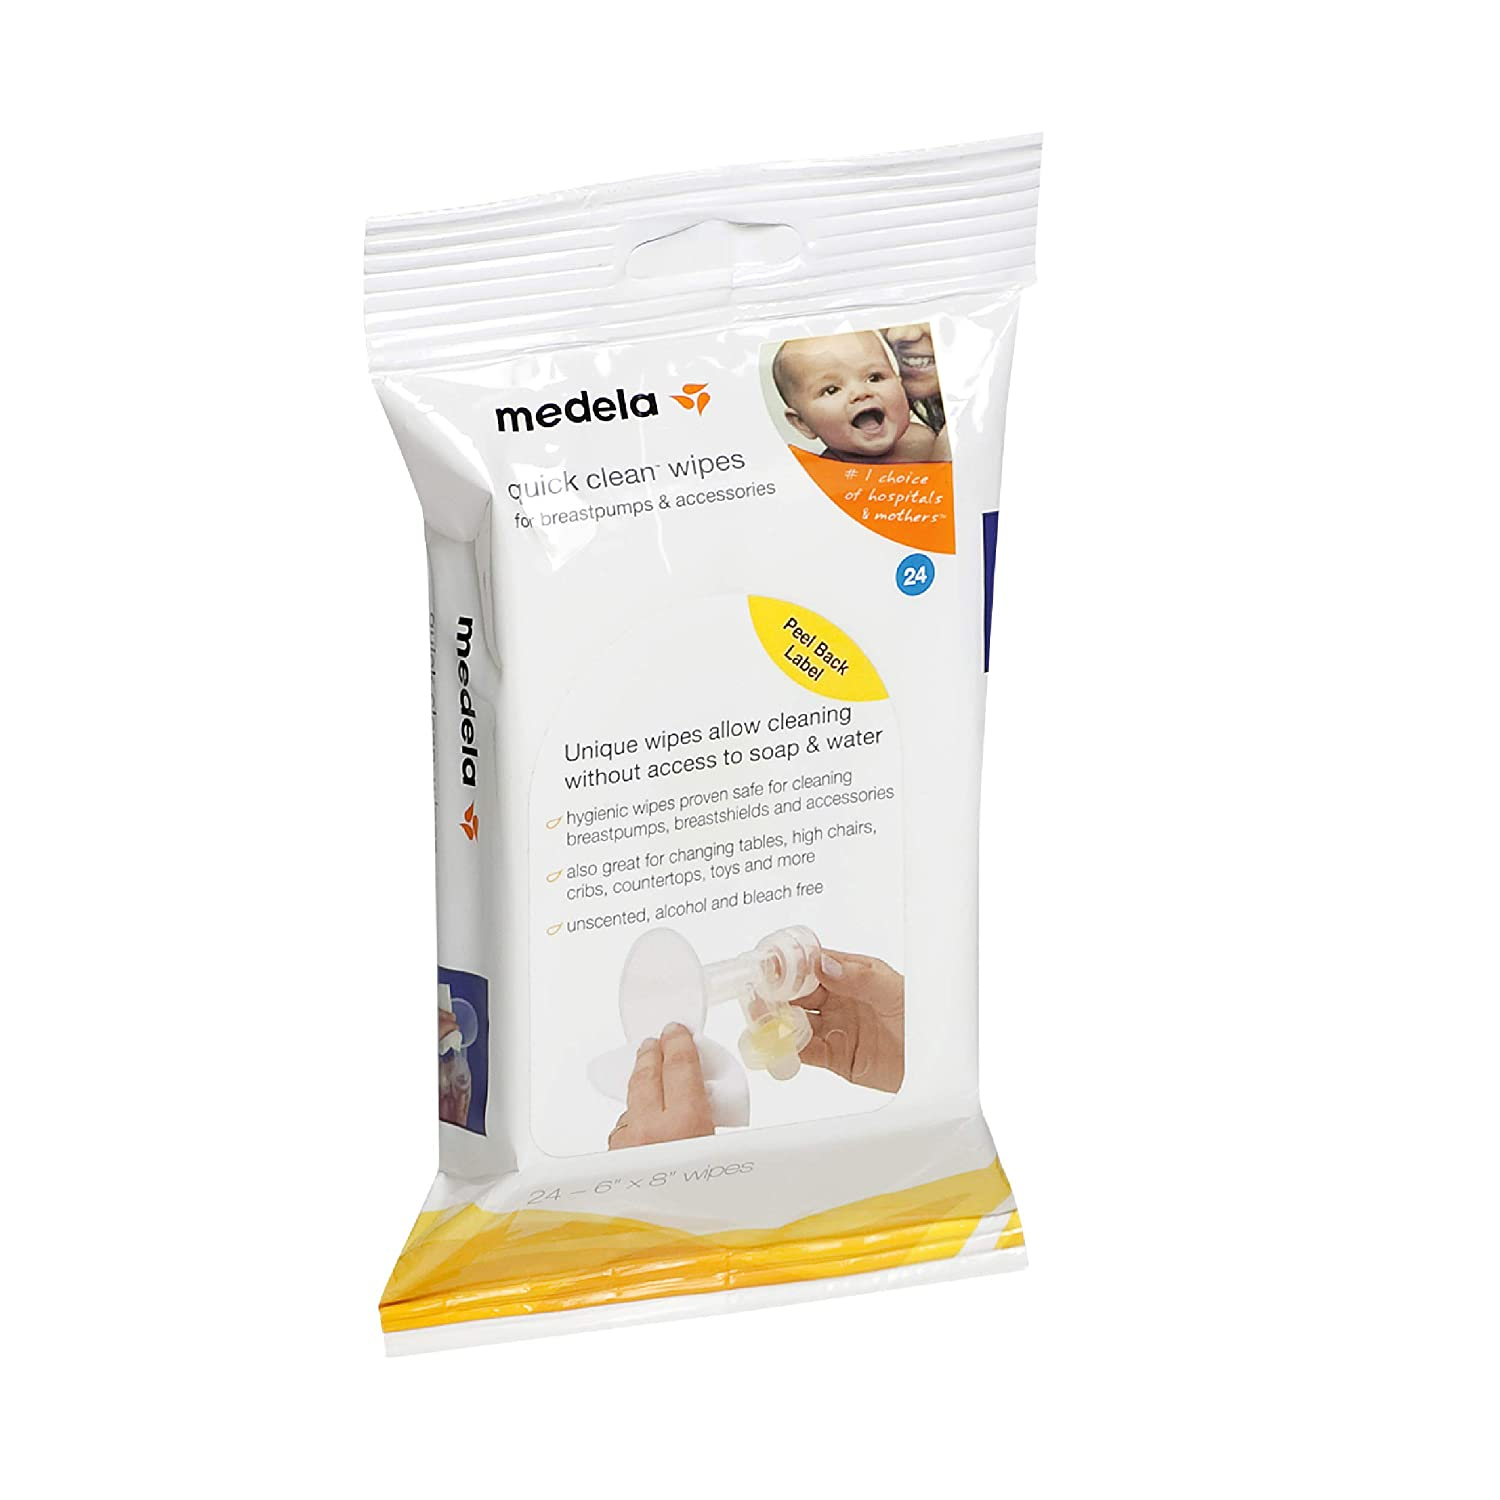 Medela Quick Clean Breastpump & Accessory Wipes - 24 ct by Medela ...